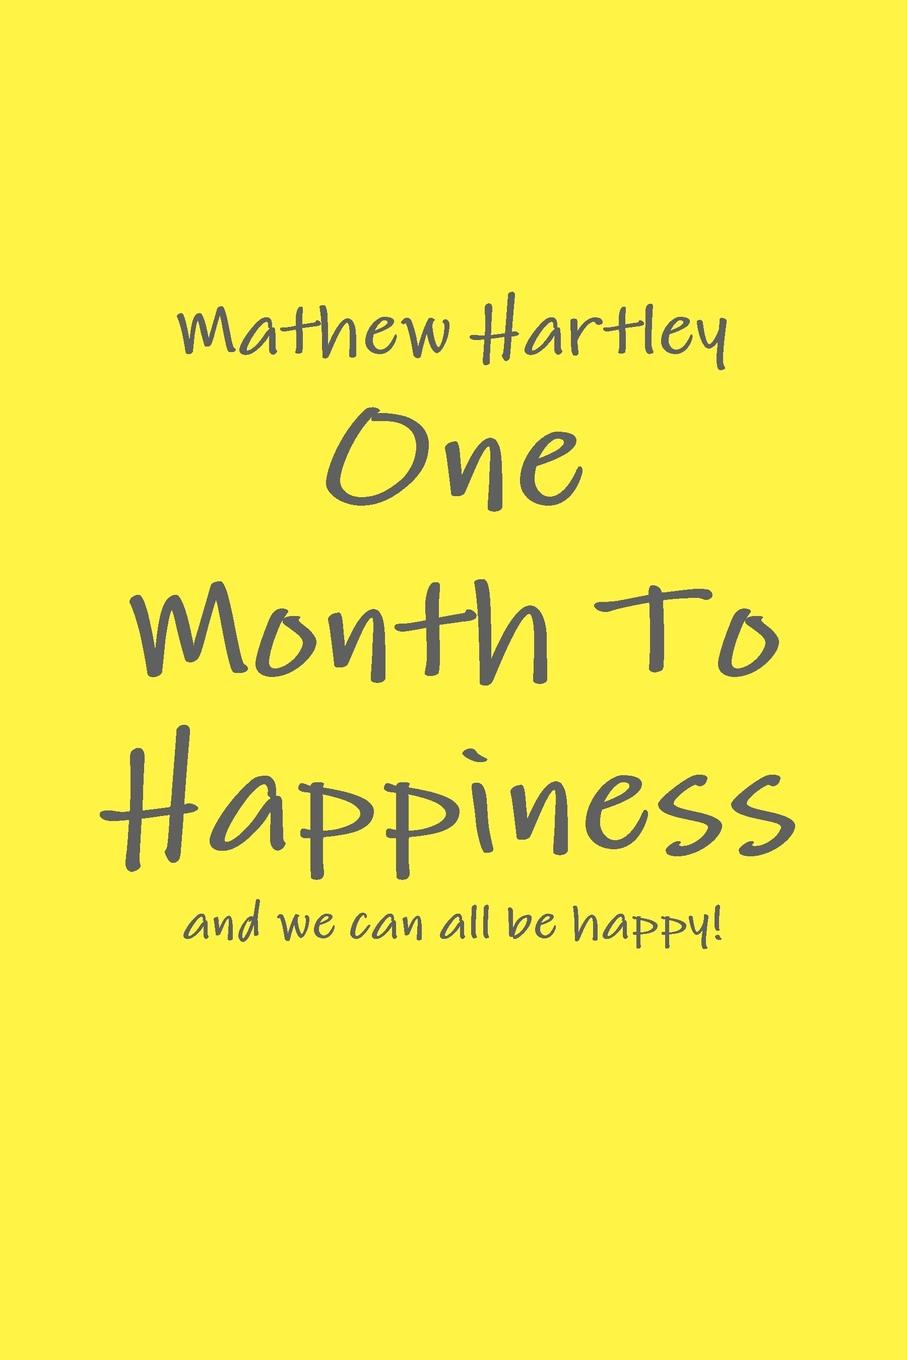 Mathew Hartley One Month To Happiness mathew hartley one month to happiness